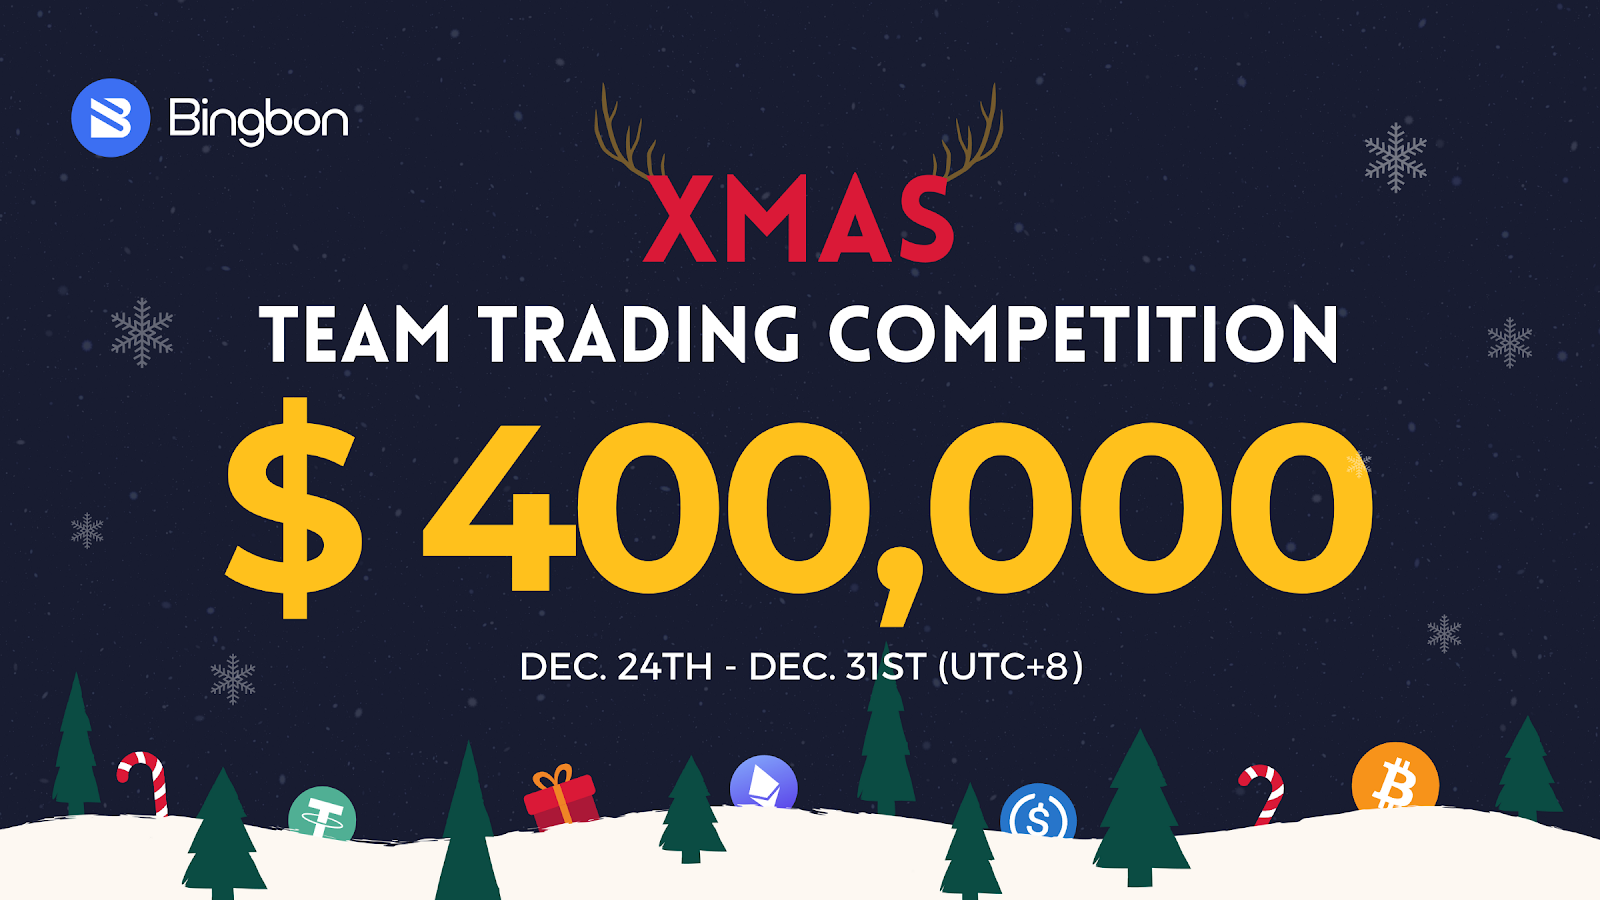 Tis the Season to Trade: Bingbon Gears Up For Xmas Trading Contest